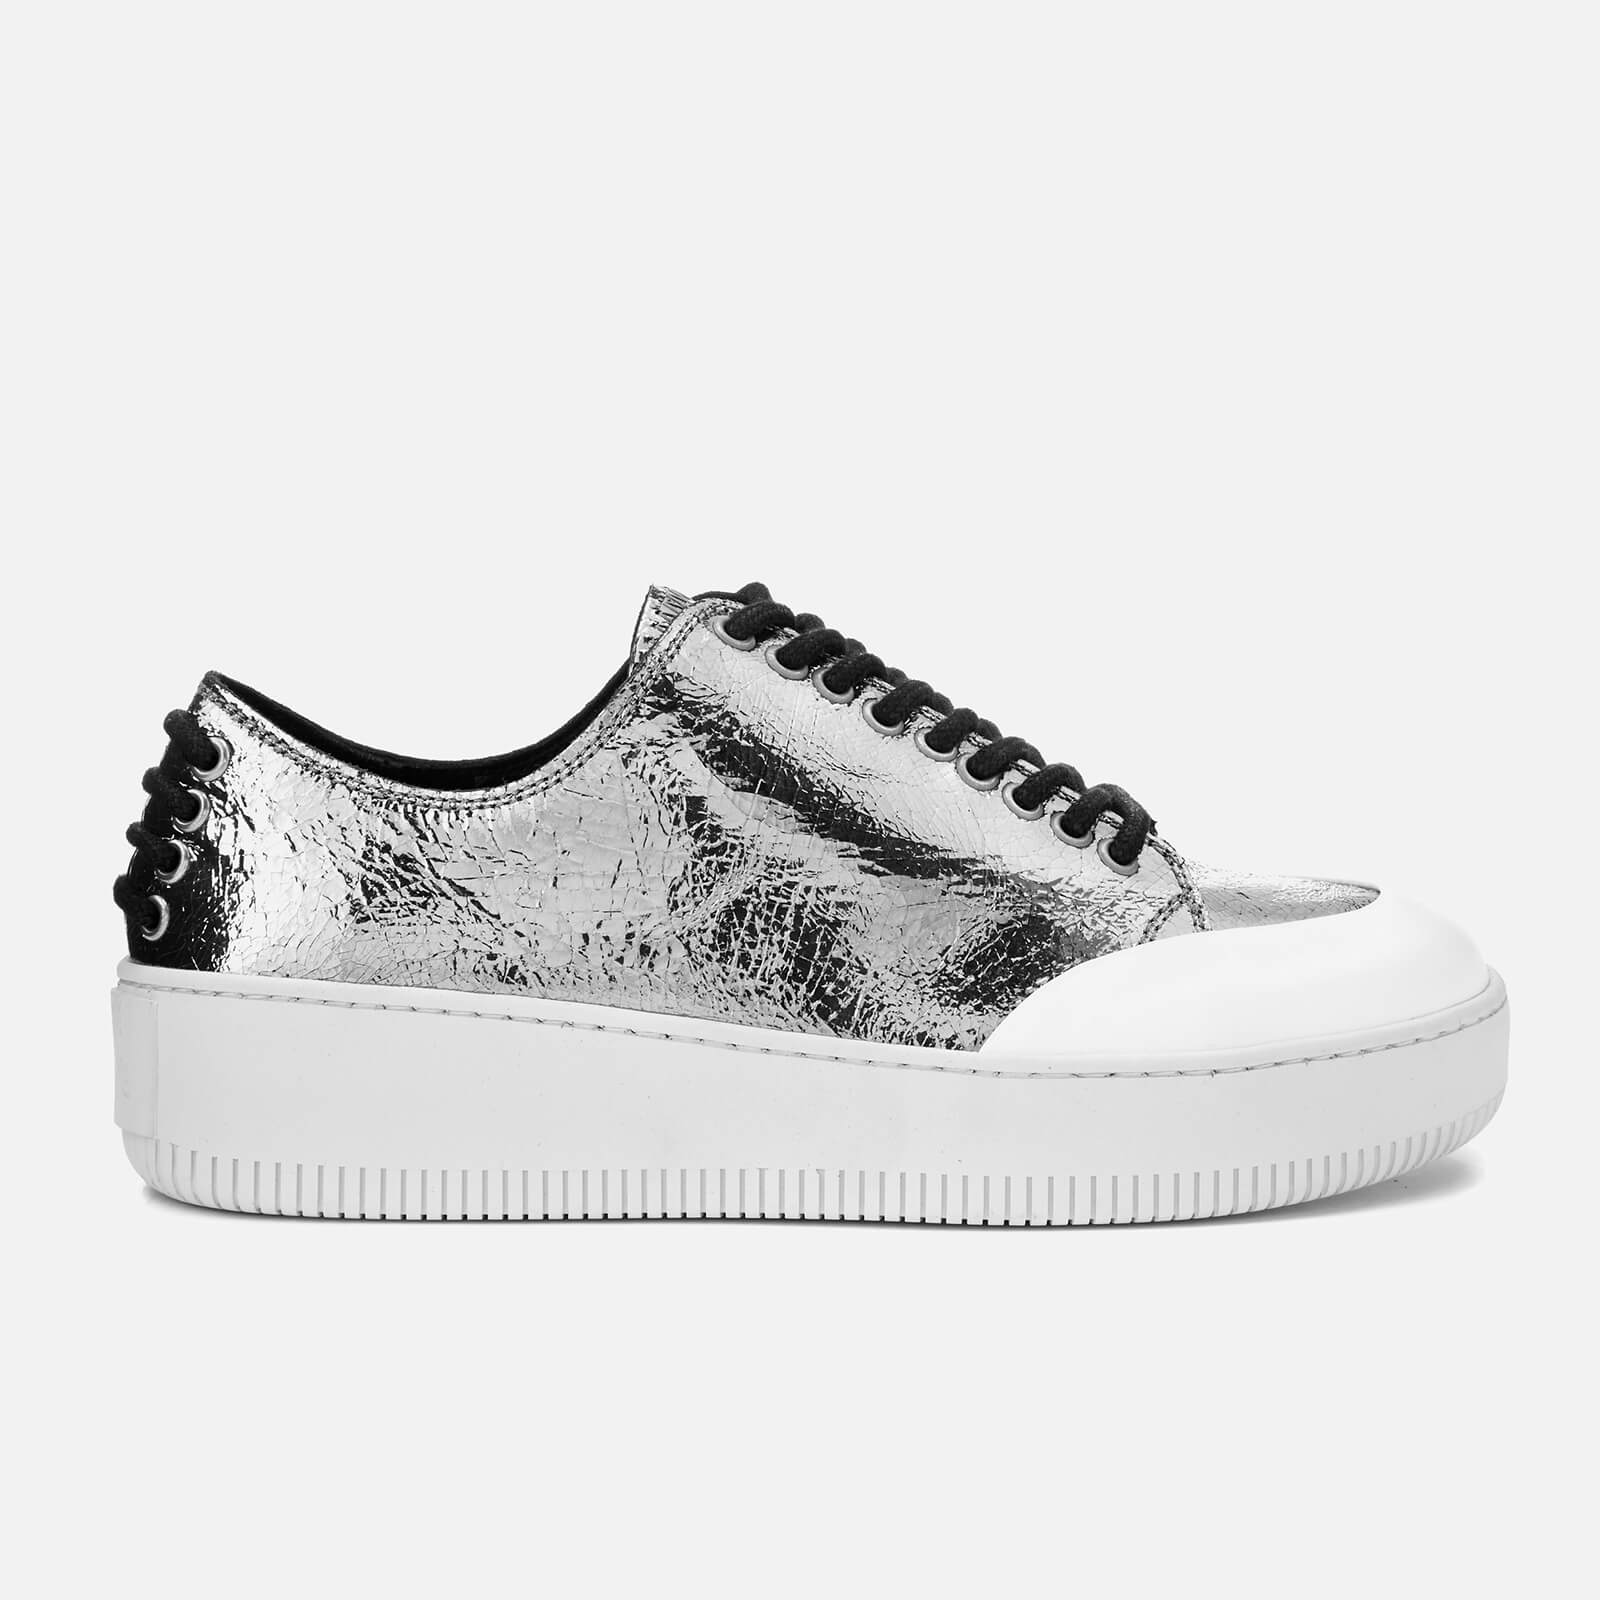 a1ae2fb90f9b McQ Alexander McQueen Women s Netil Eyelet Low Trainers - Silver - Free UK  Delivery over £50